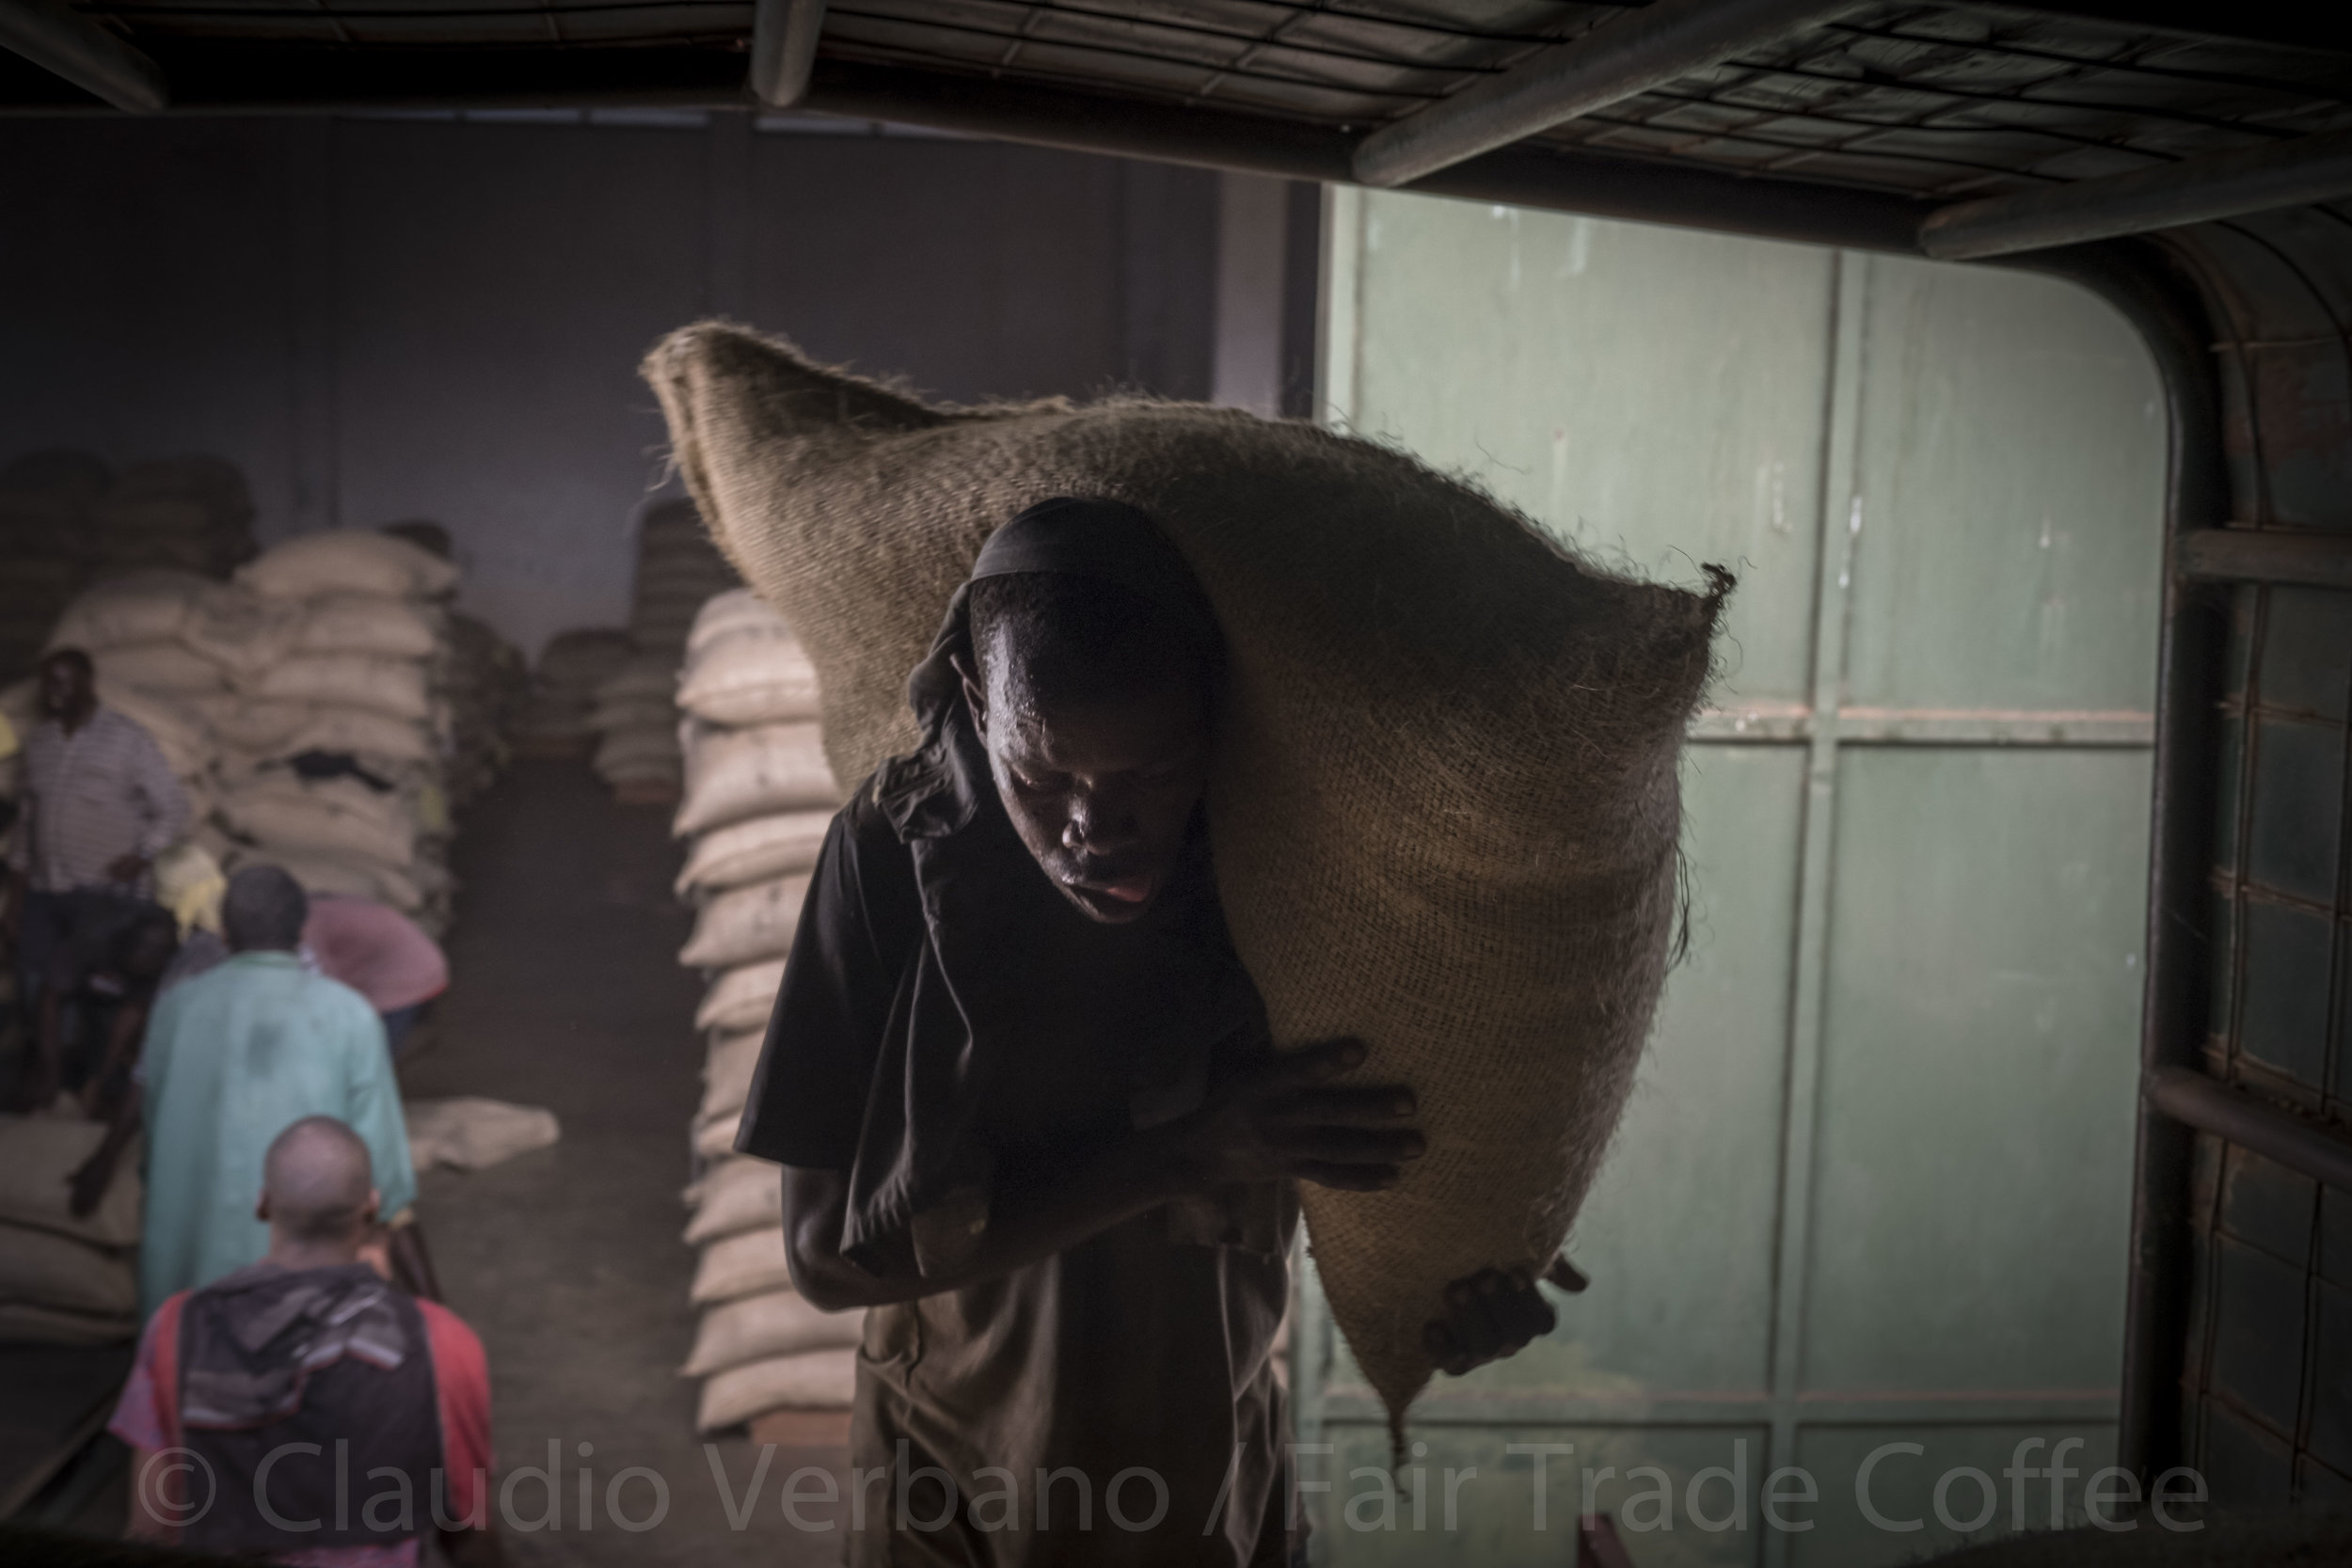 Fair Trade Coffee by Claudio Verbano 21.jpg